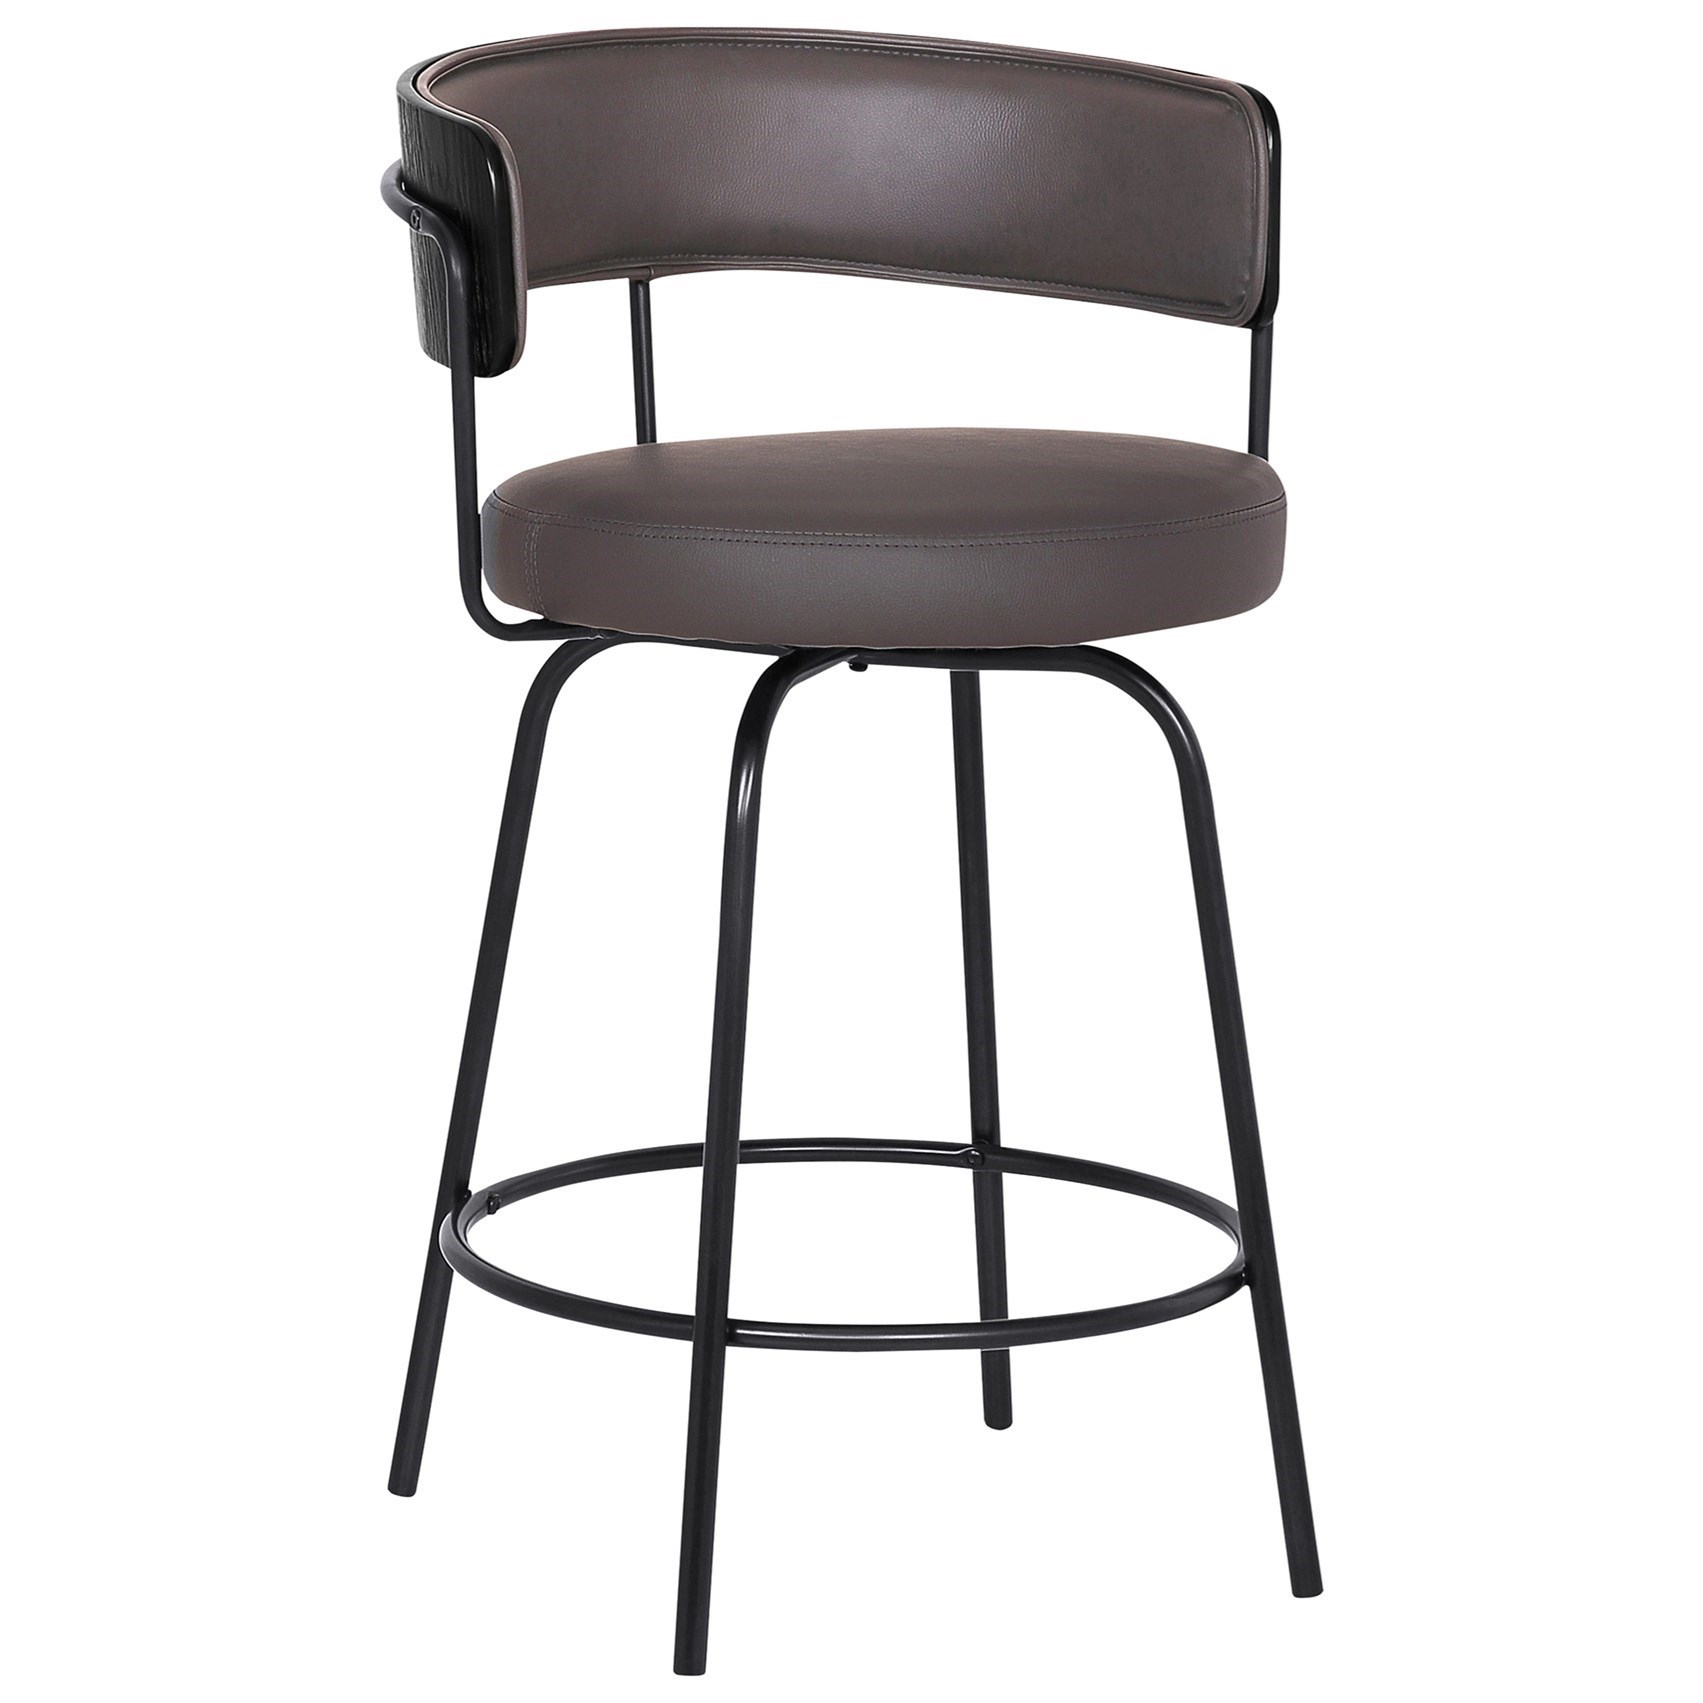 """Avalon 30"""" Gray Faux Leather Swivel Barstool by Armen Living at Dream Home Interiors"""